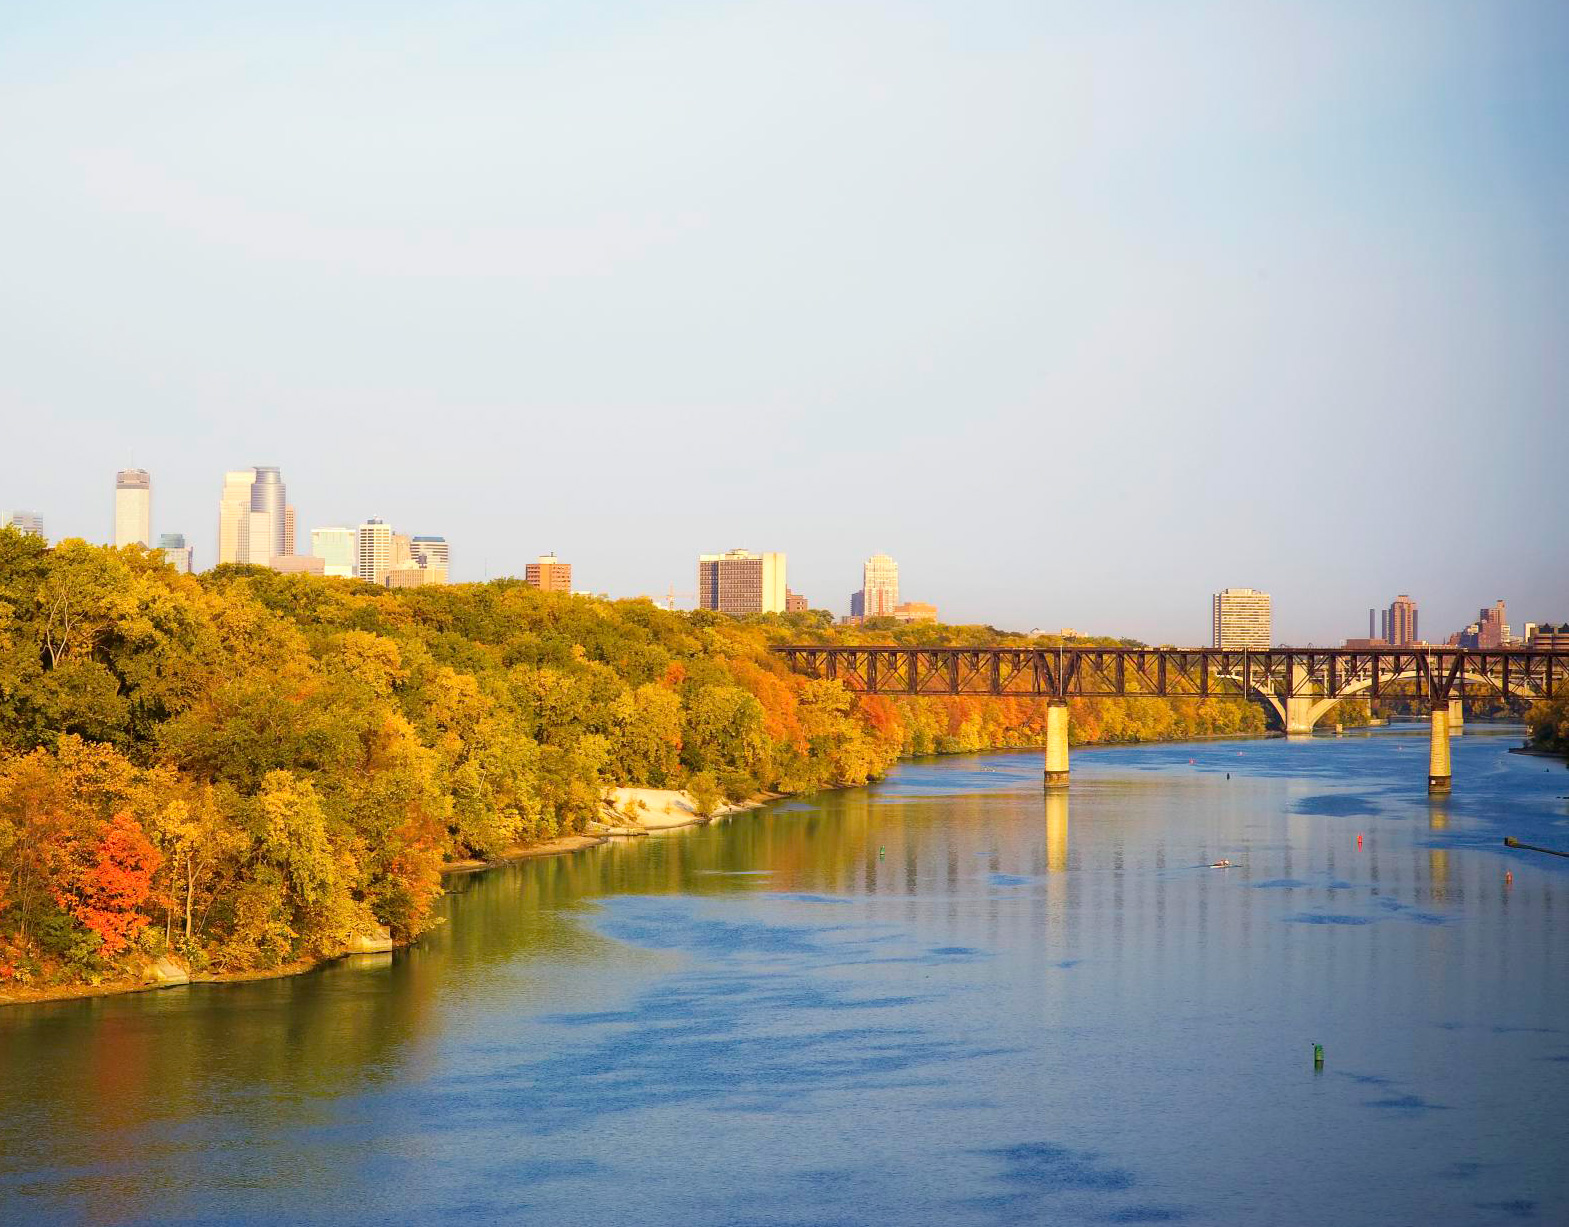 Fall color arrives as early as September along the Mississippi River in the Twin Cities.